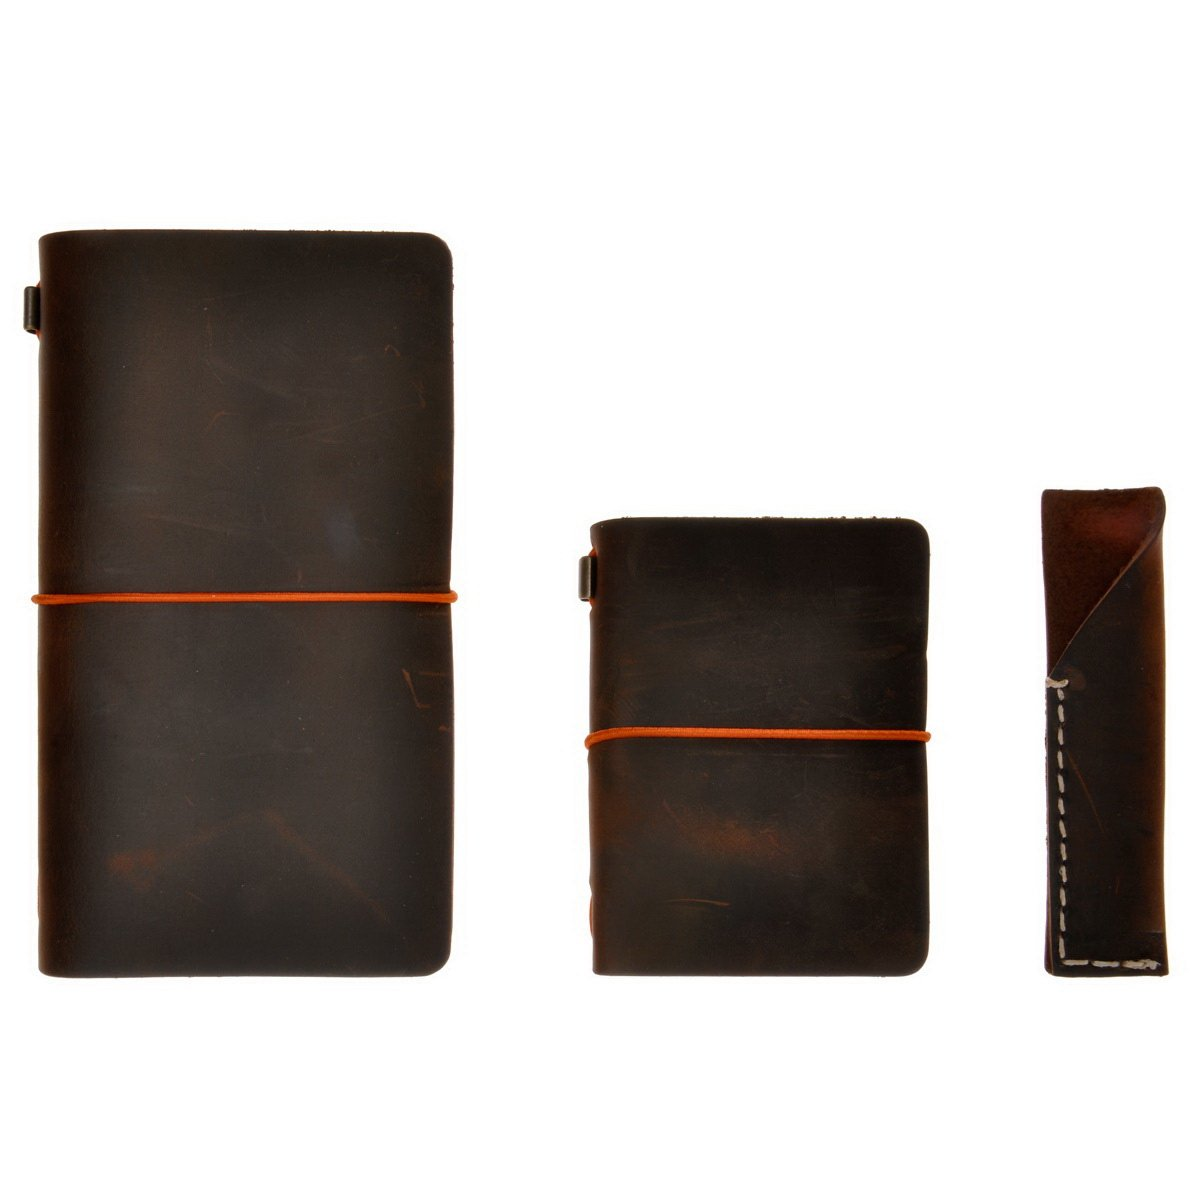 Refillable Leather Journal Vintage Travelers Notebook Set, 4.7'' x 8.6'' &3.9'' x 5.2'', with Pen Holder, for Men Women Writing Gift, by ZLYC, Dark Coffee